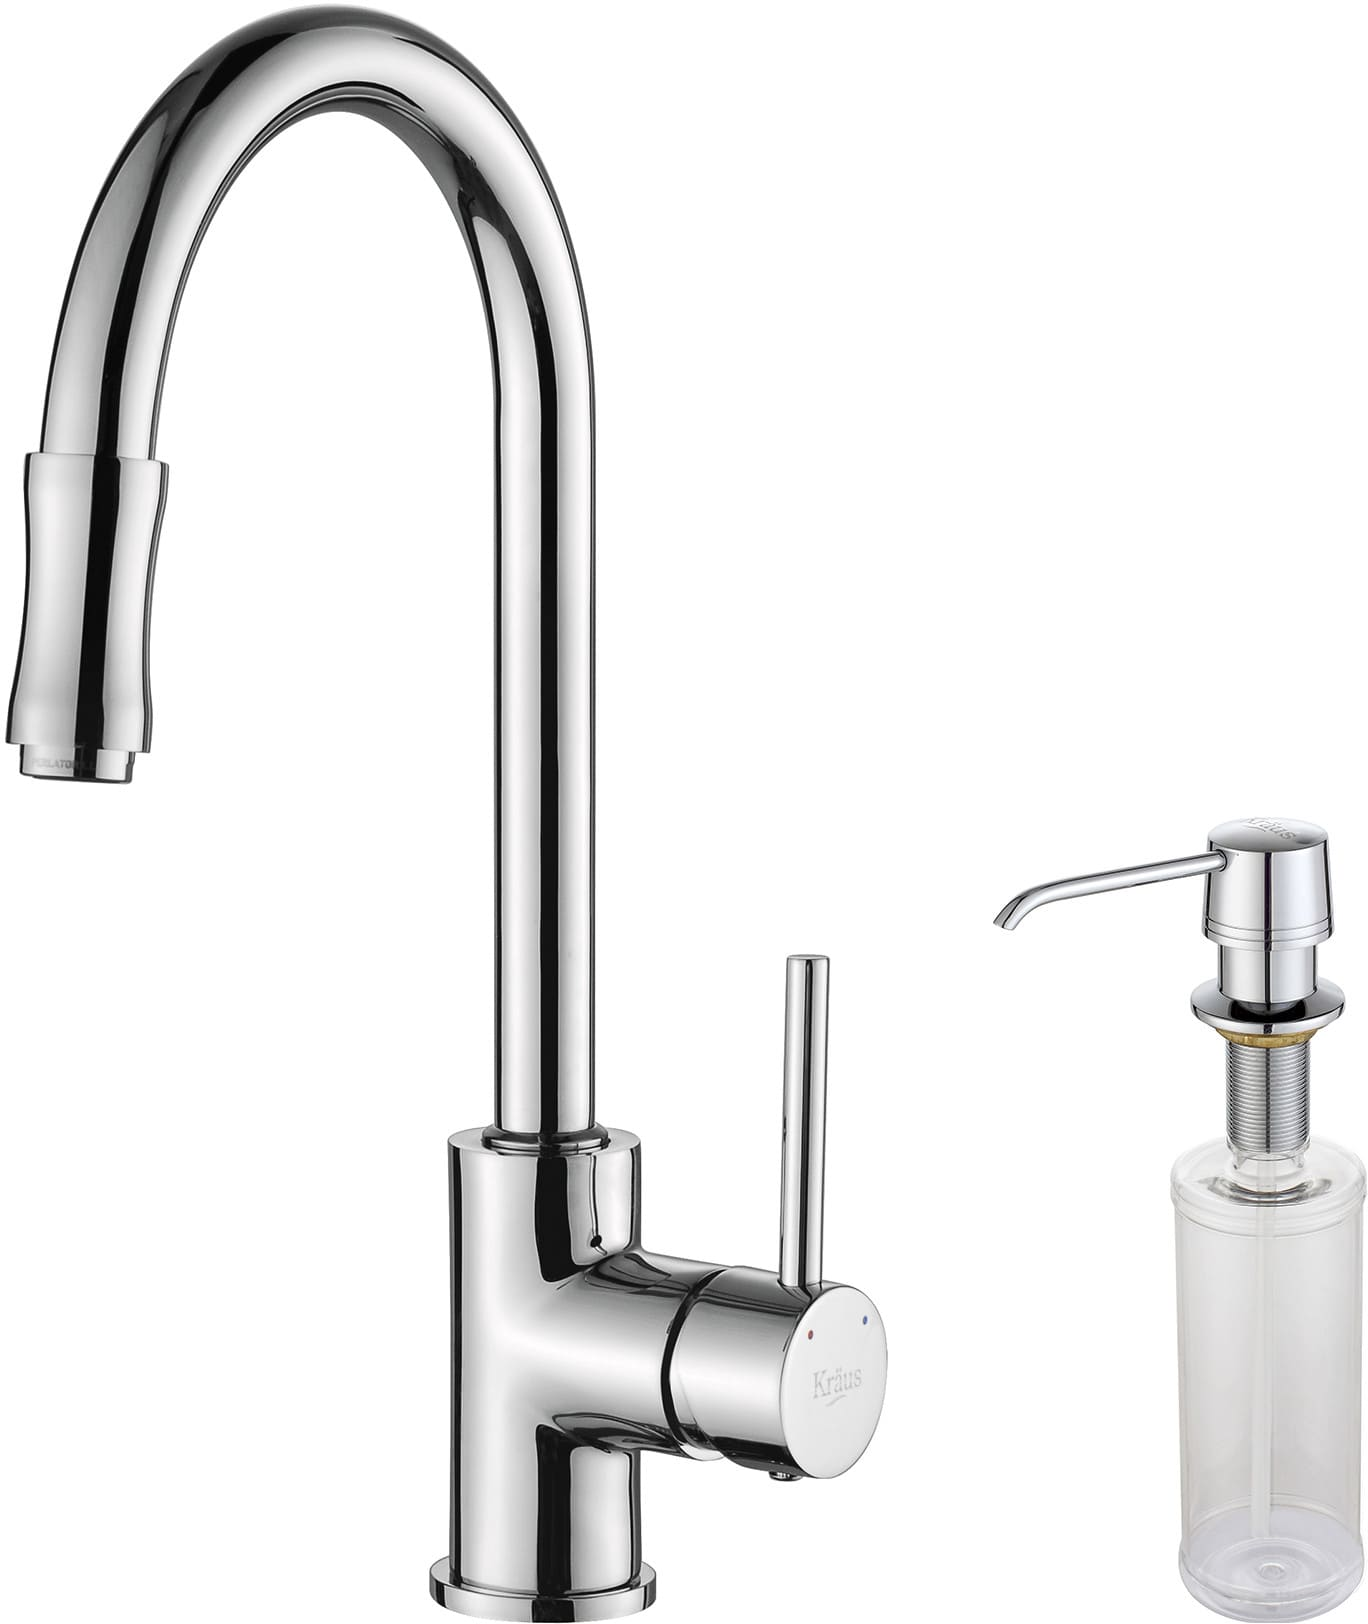 faucets steel single pull kitchen stainless picture in out handle blanco faucet spray of silhouette